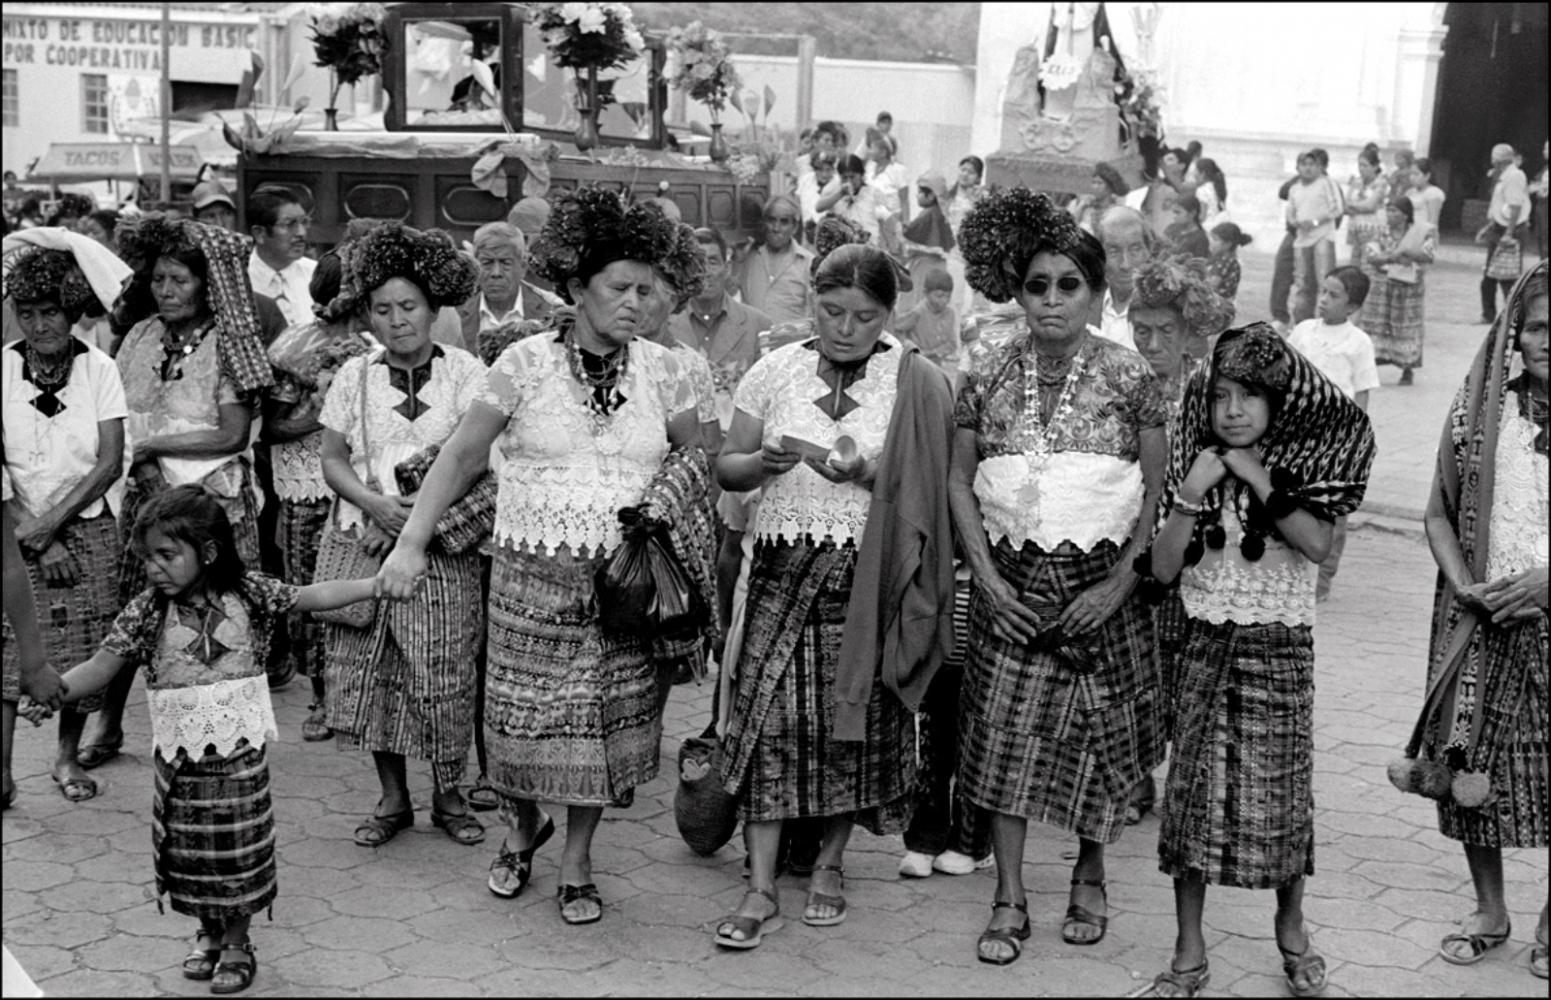 Procession of Women, Sacapulas, Guatemala, April 2006